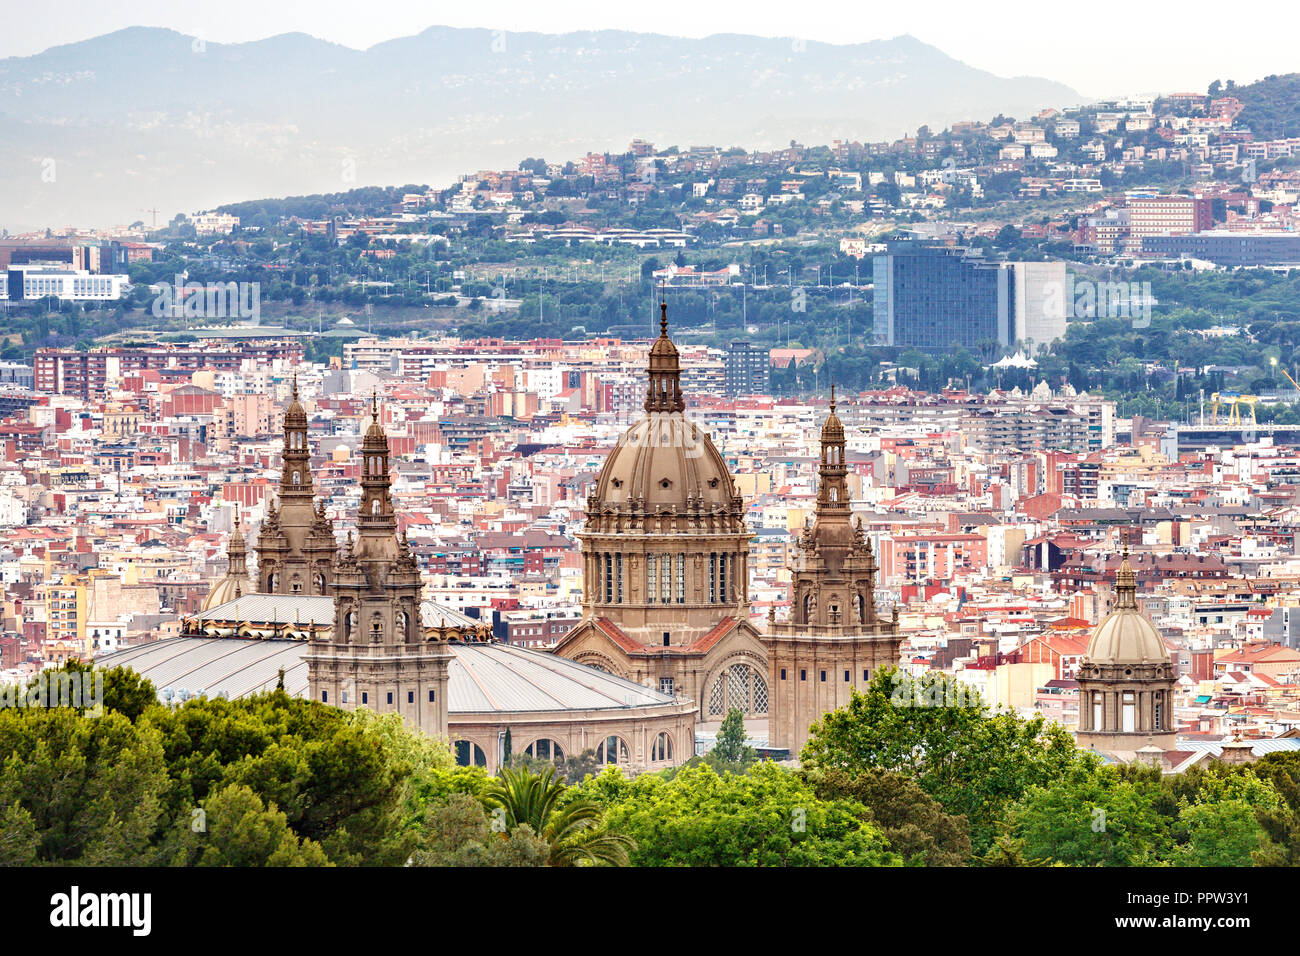 Aerial View Of Barcelona Spain Stock Photo 220598757 Alamy